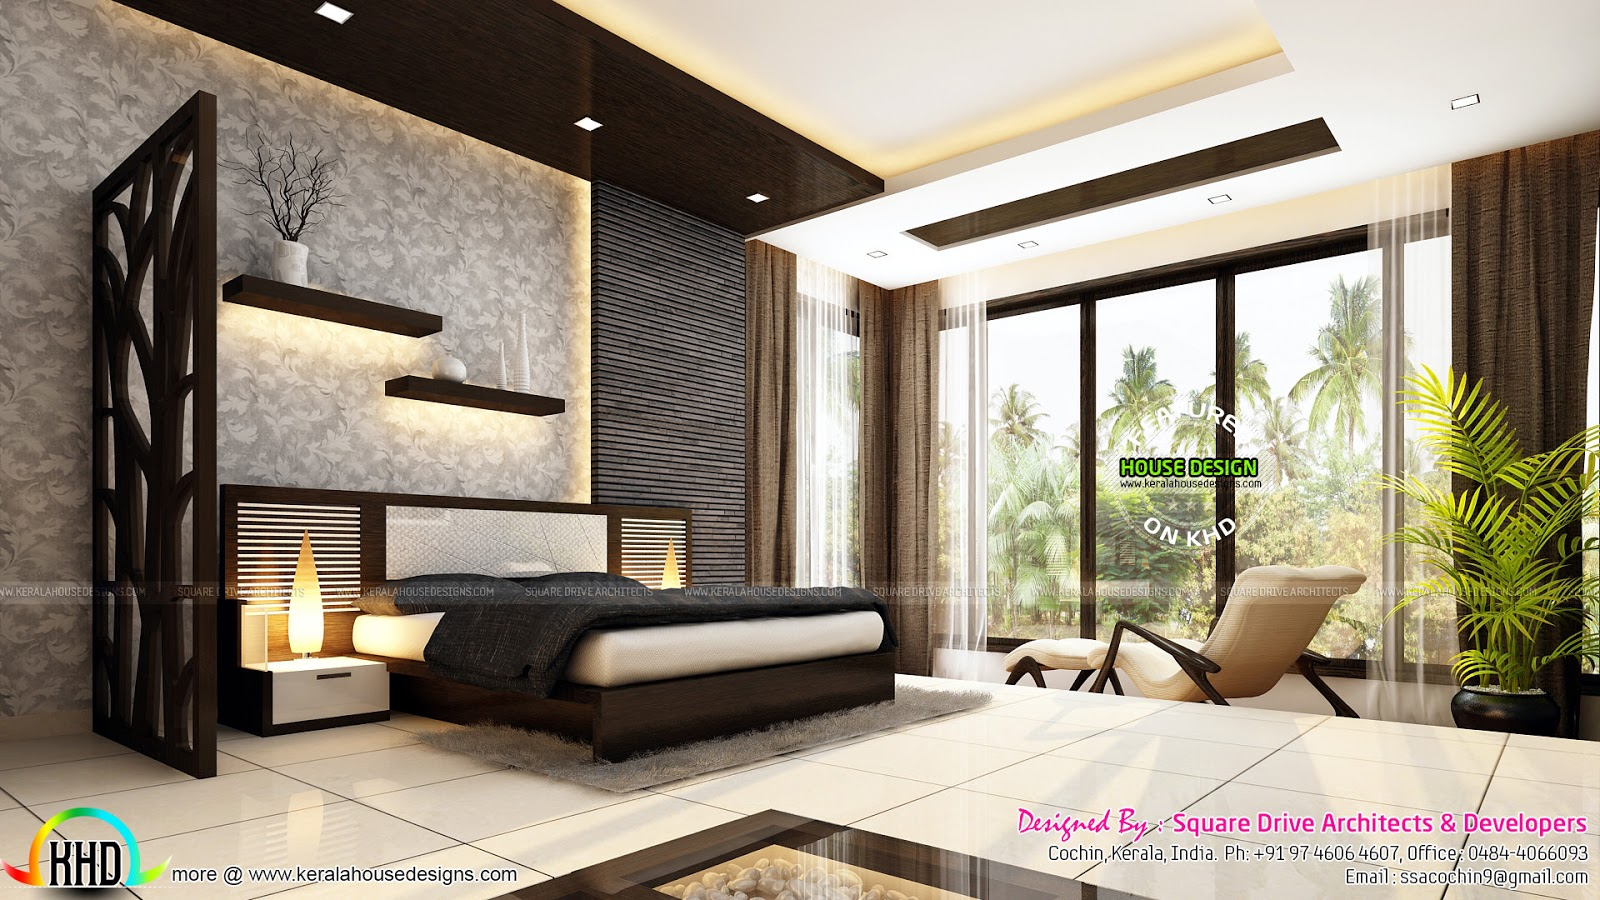 Very beautiful modern interior designs kerala home for Bedroom interior pictures